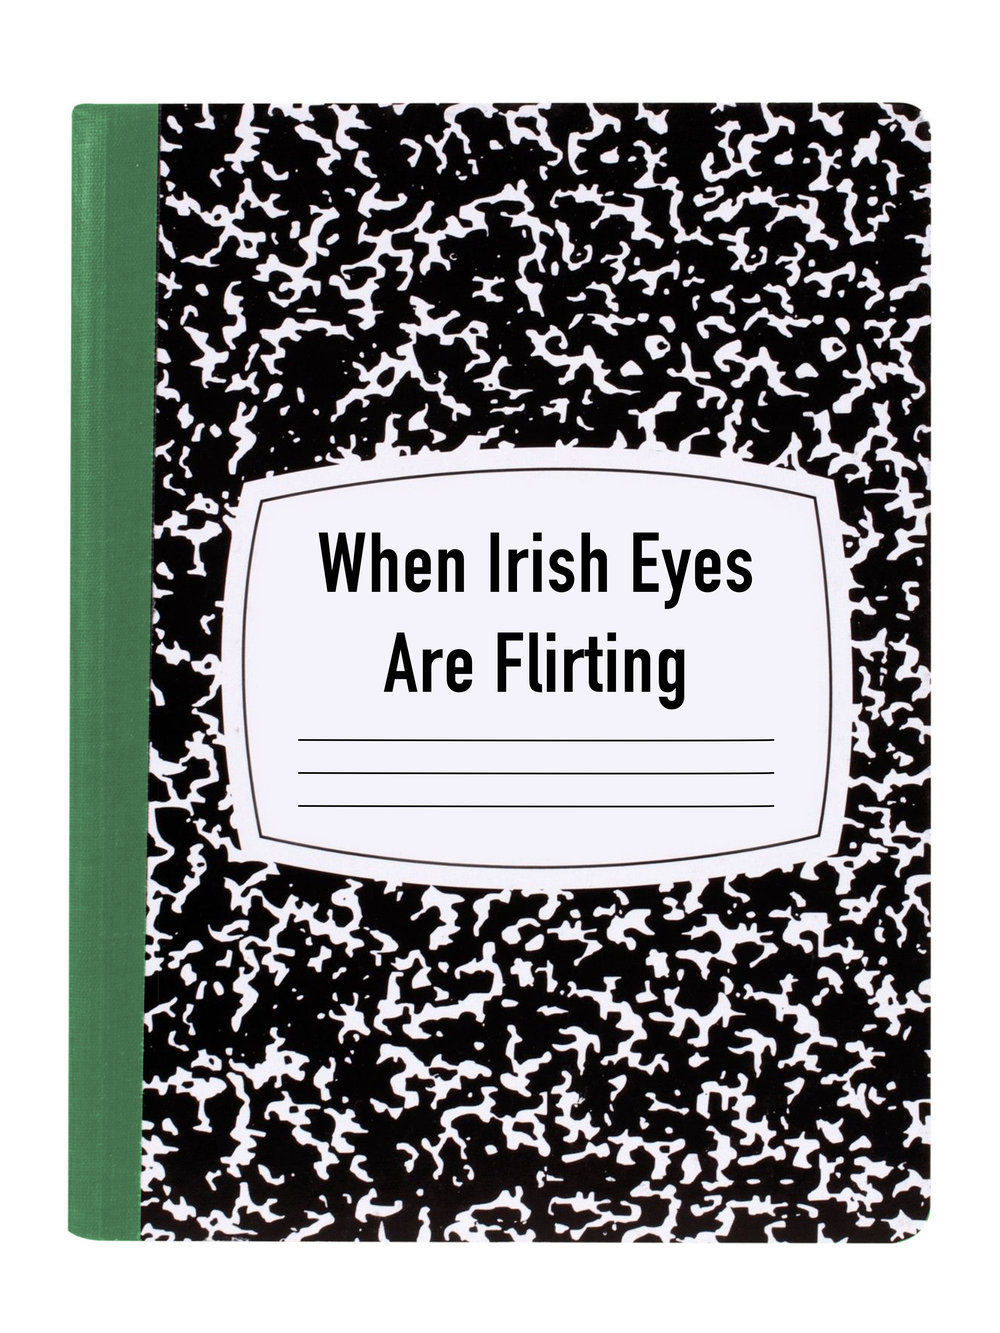 WHEN IRISH EYES ARE FLIRTING